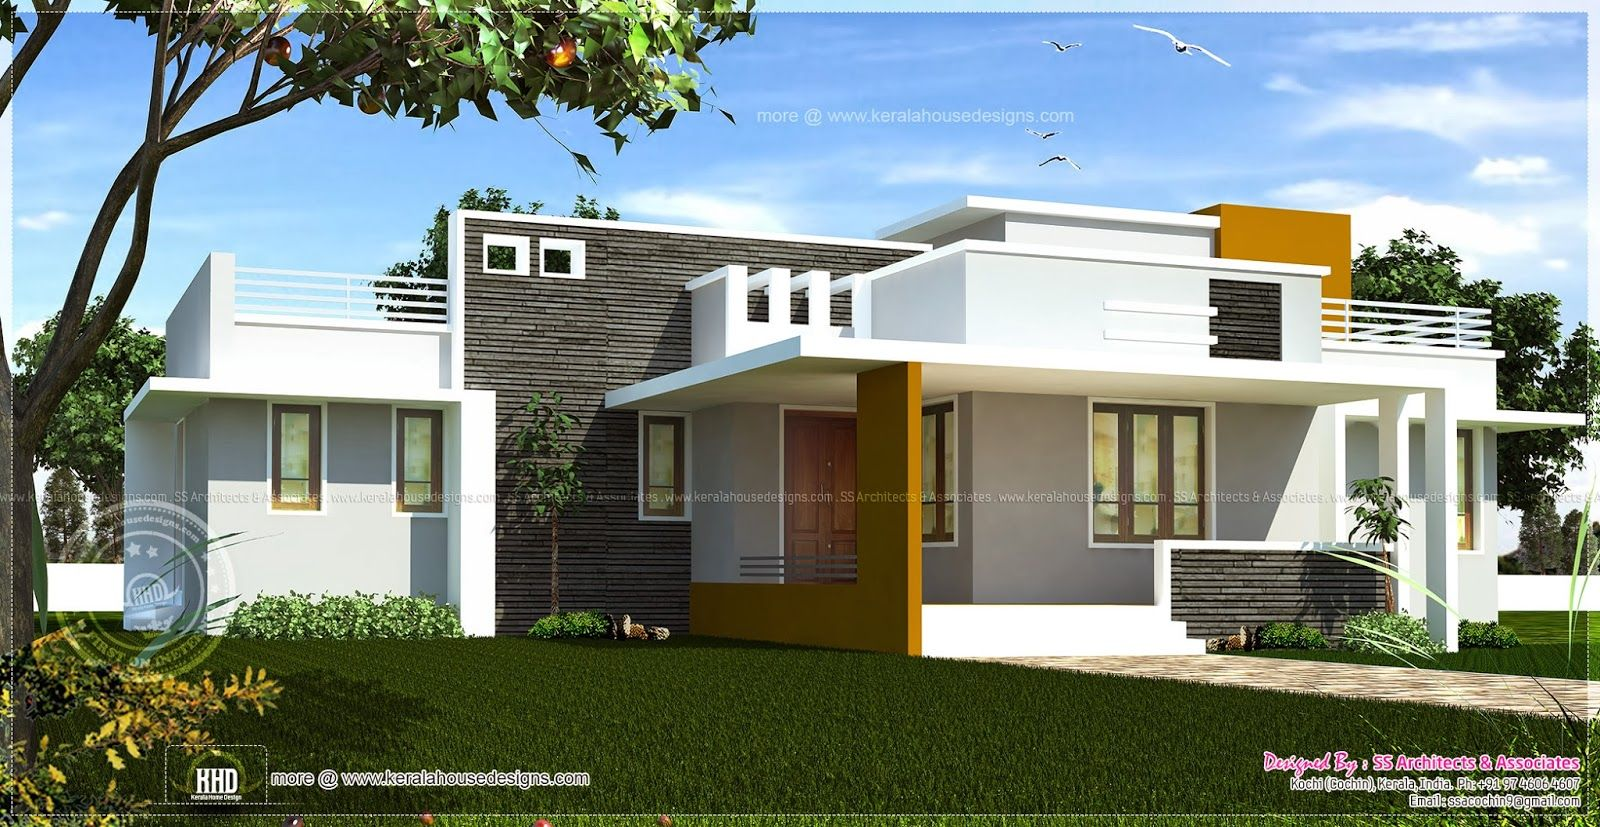 Excellent single home designs single floor contemporary for Contemporary single story house design